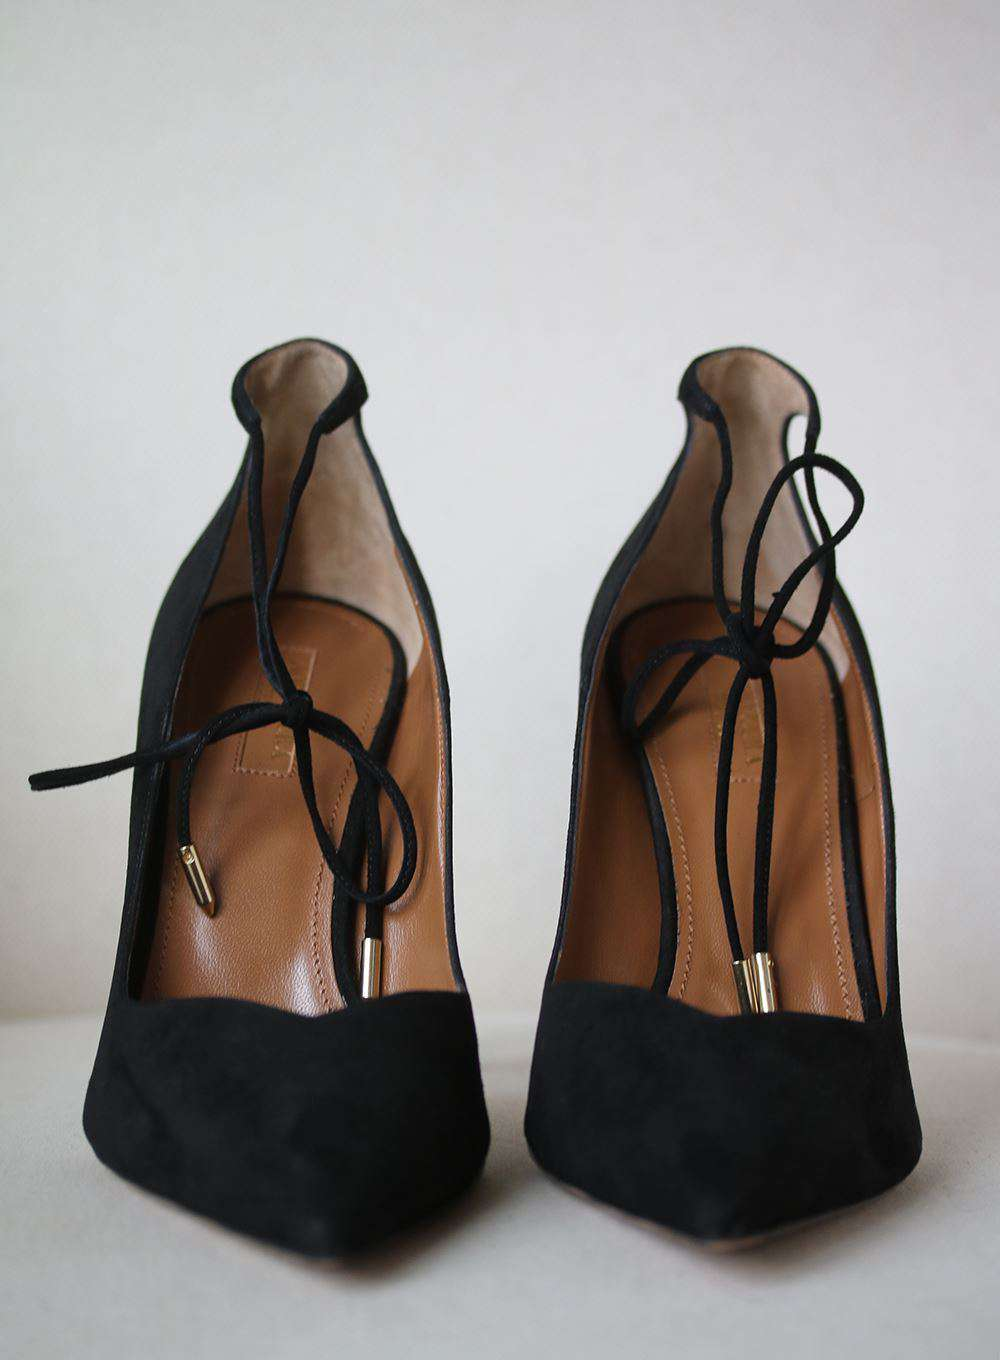 AQUAZZURA ALLURE 105 SUEDE PUMPS EU 40 UK 7 US 10